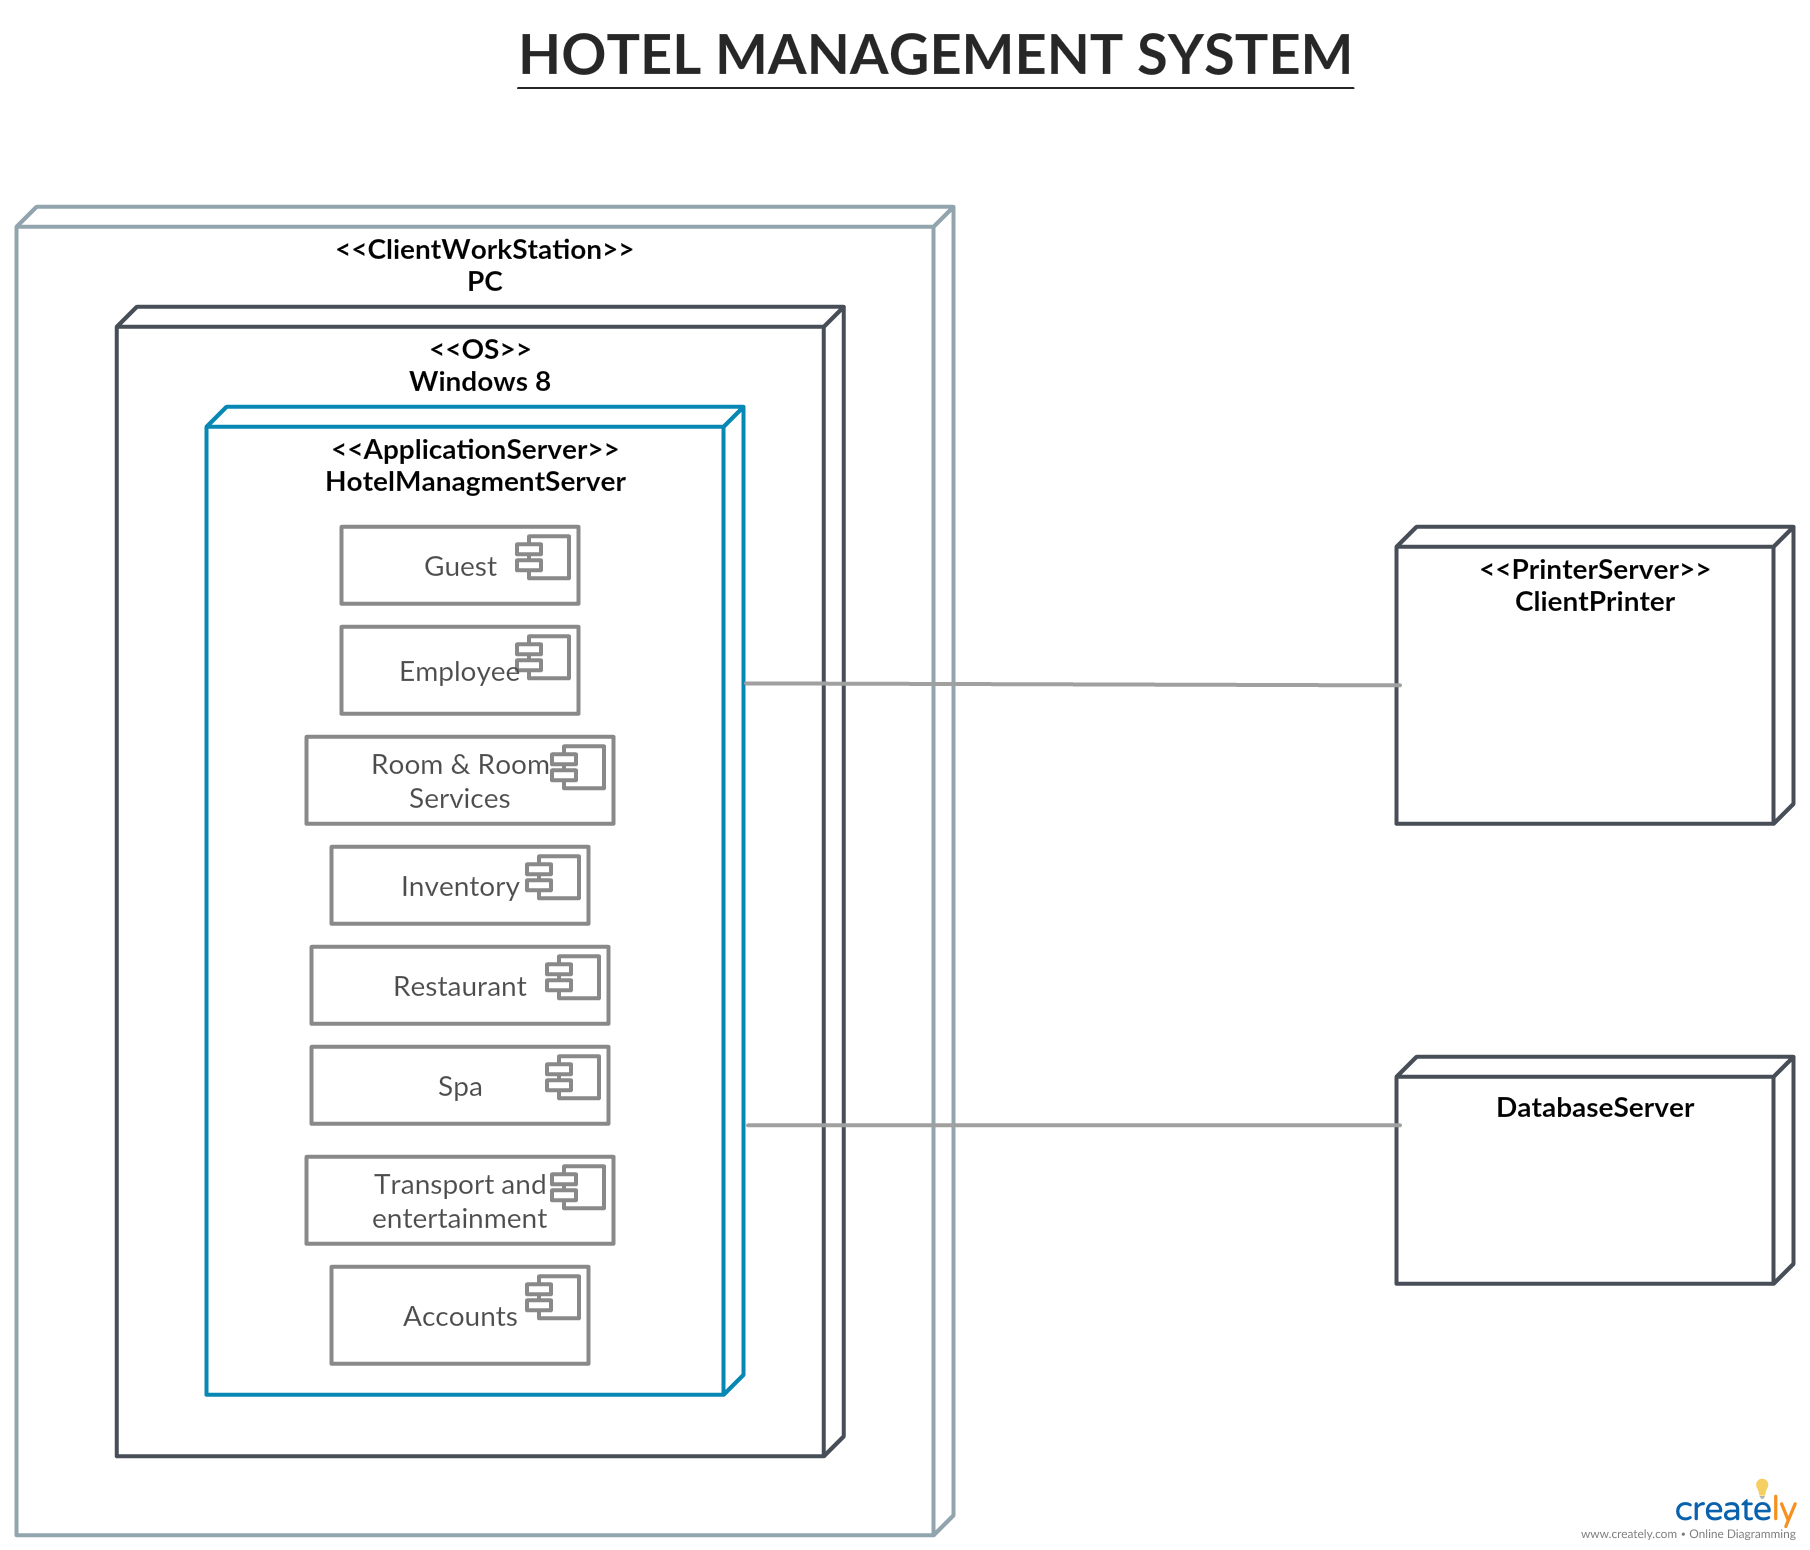 Deployment Diagram for Hotel Management System - You can